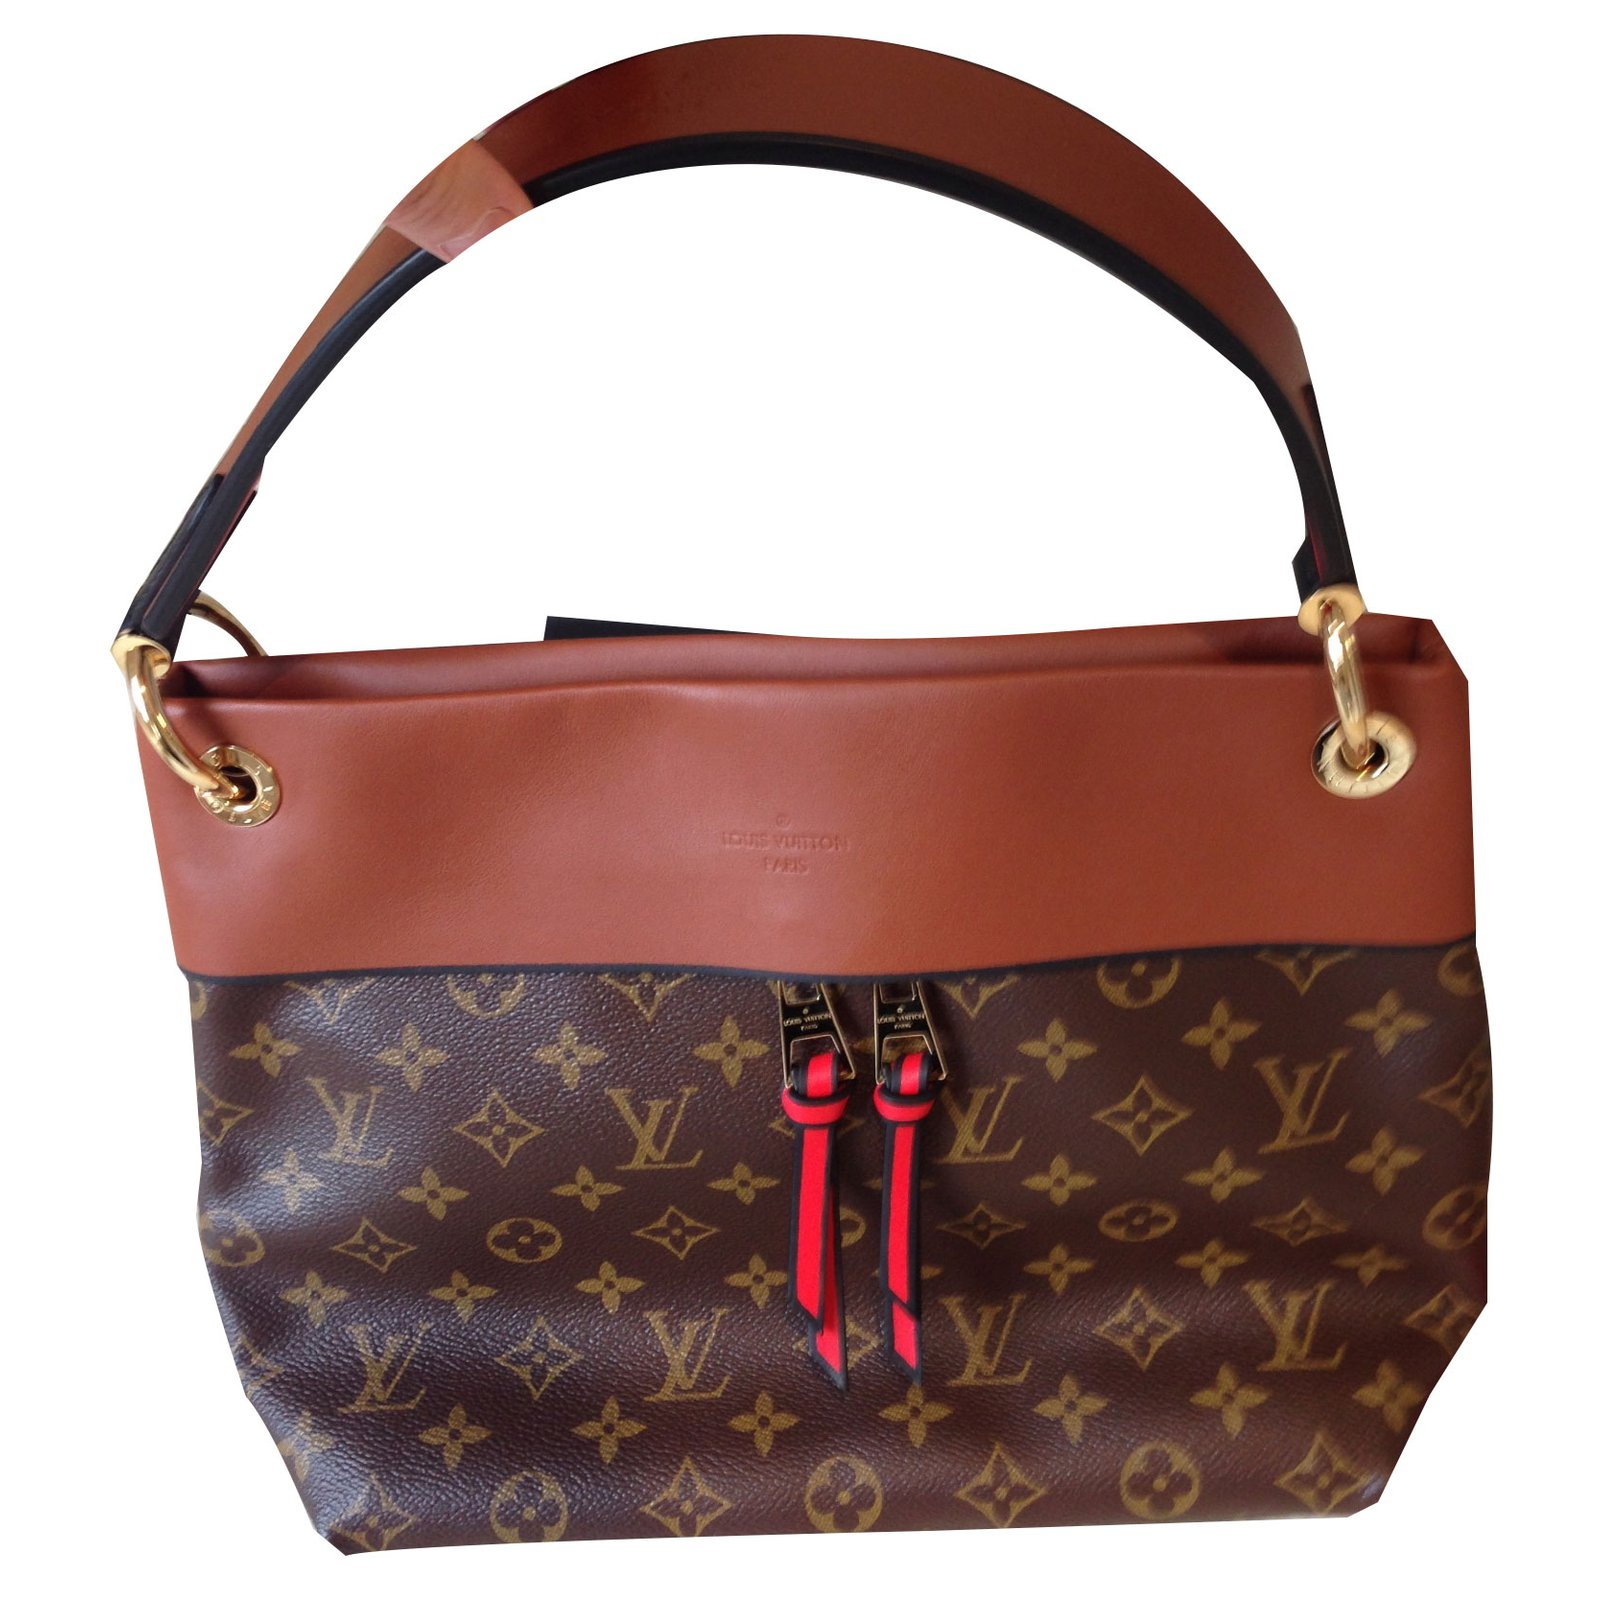 Louis Vuitton Tuileries bag Handbags Leather Caramel ref.85828 ... 4649d666c